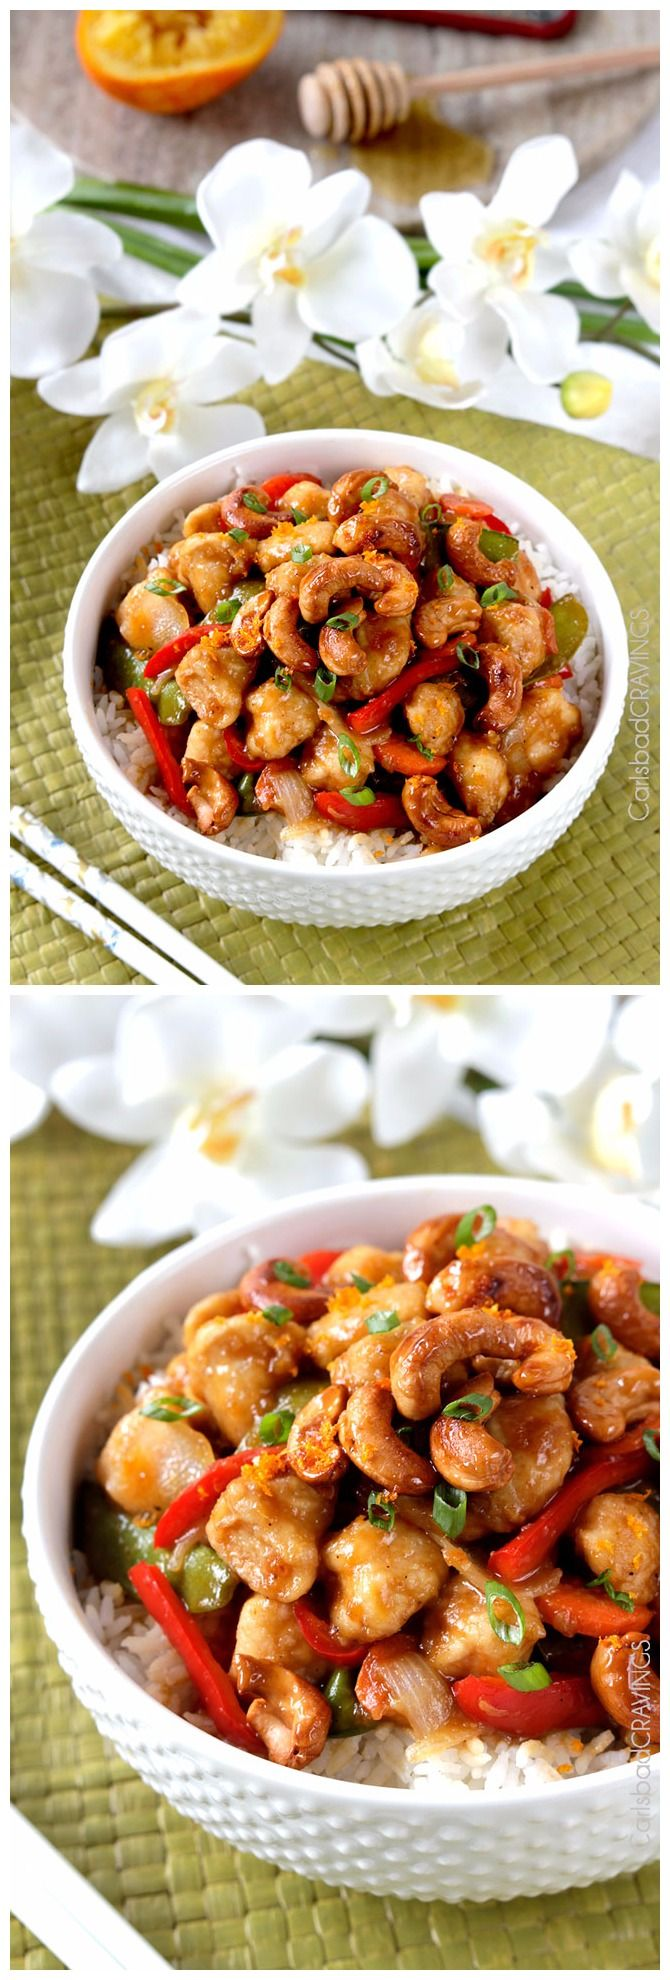 Skinny Sweet and Spicy Caramelized Cashew Ginger Chicken Stir Fry